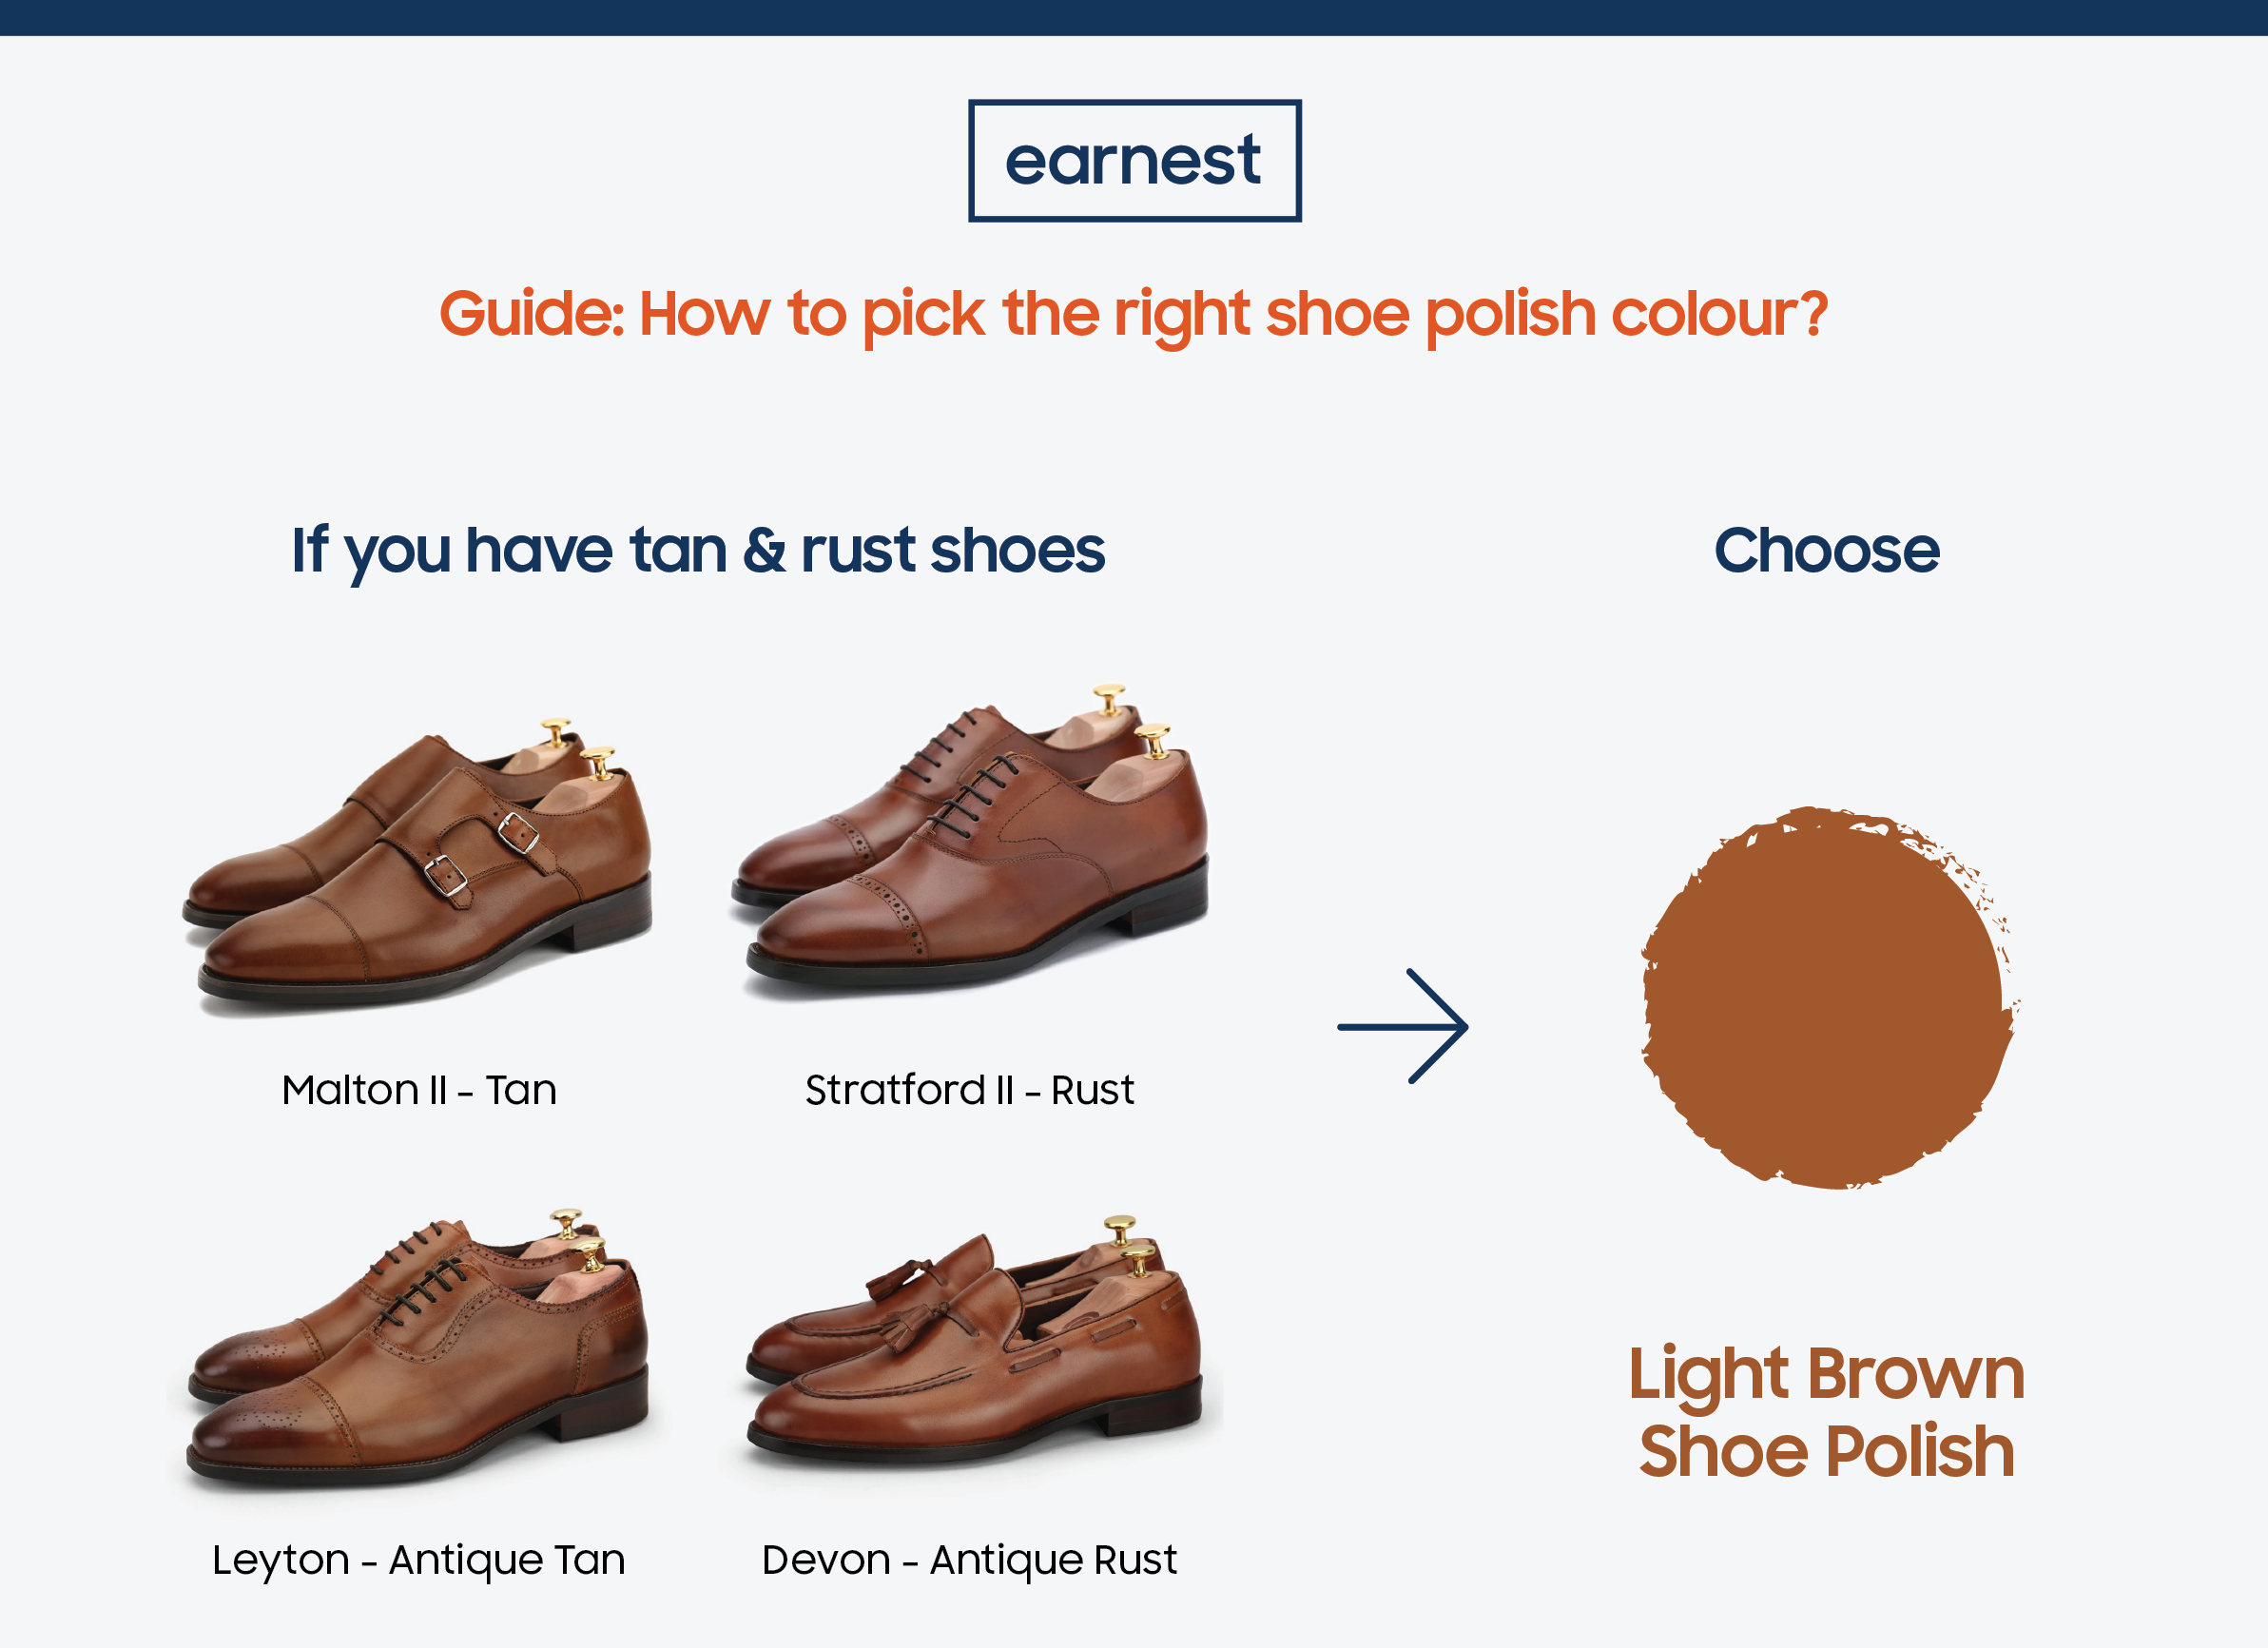 right shoe polish colour for your shoes